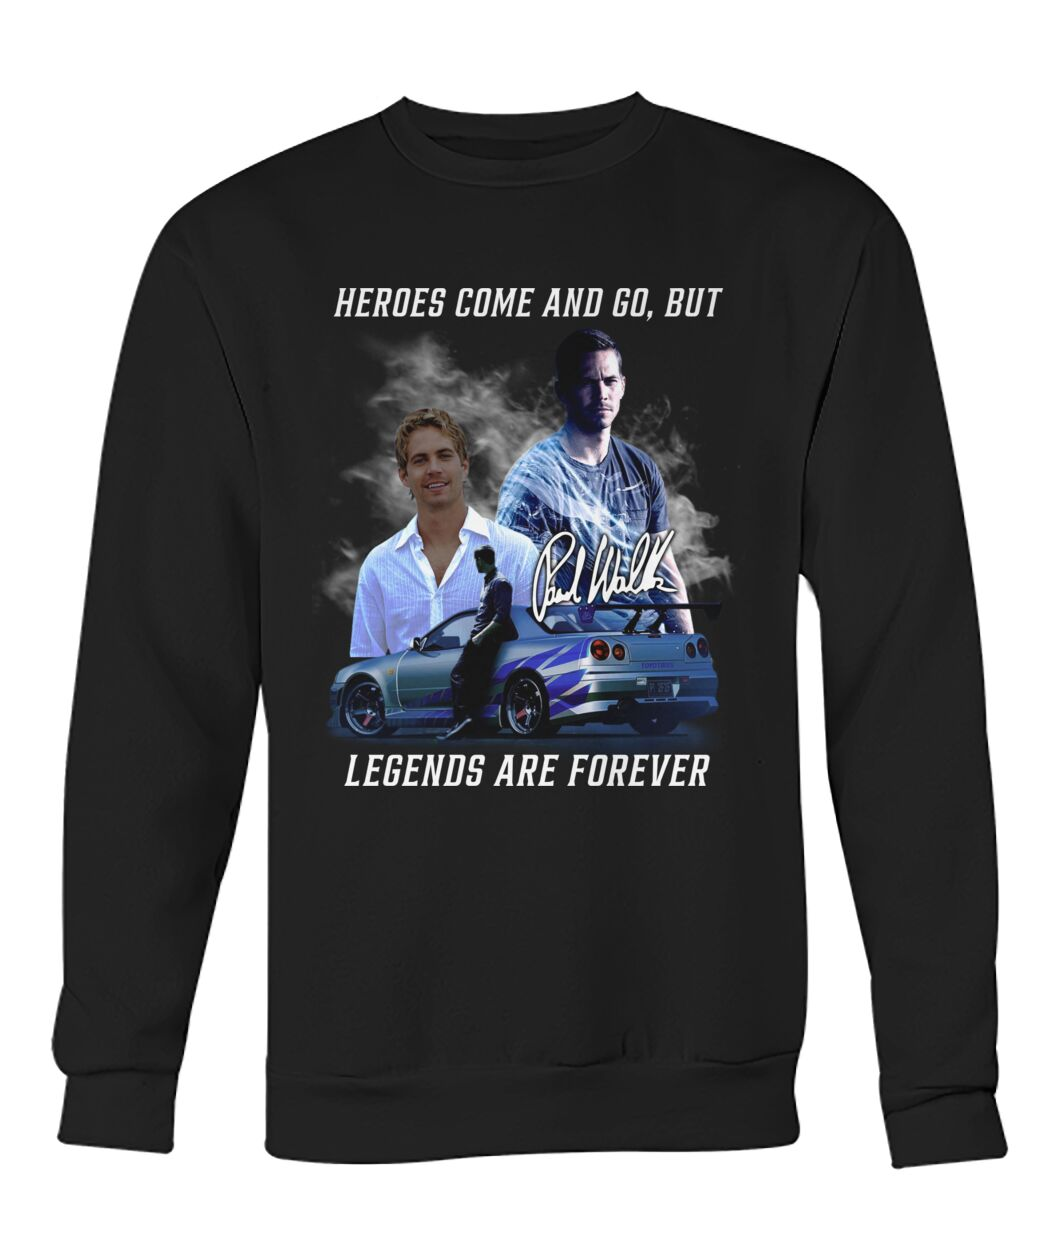 Paul Walker Heroes come and go but legens are forever shirt 11